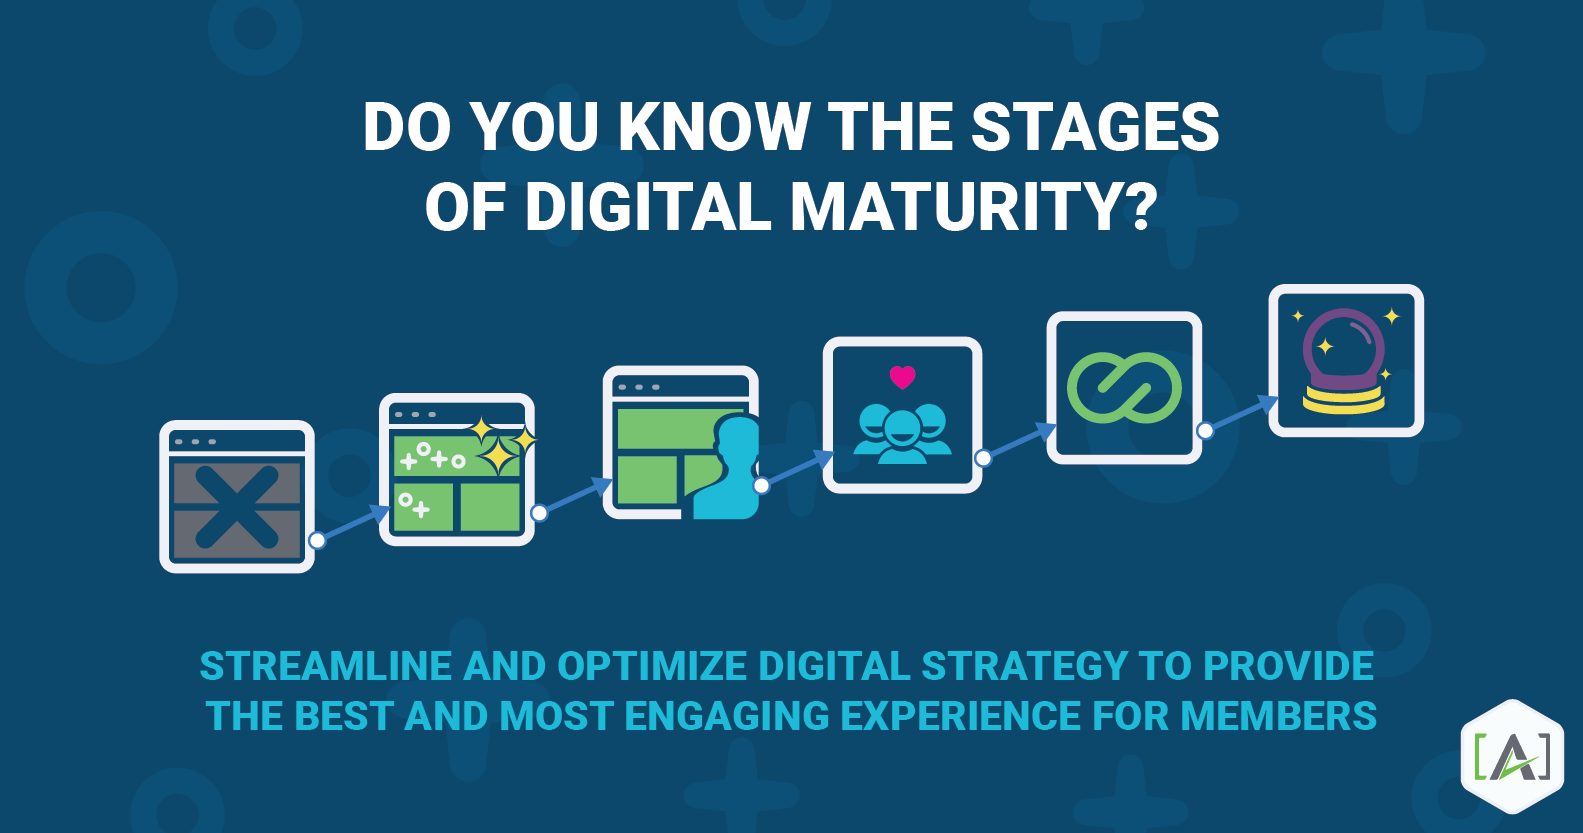 The Key Stages of Digital Maturity